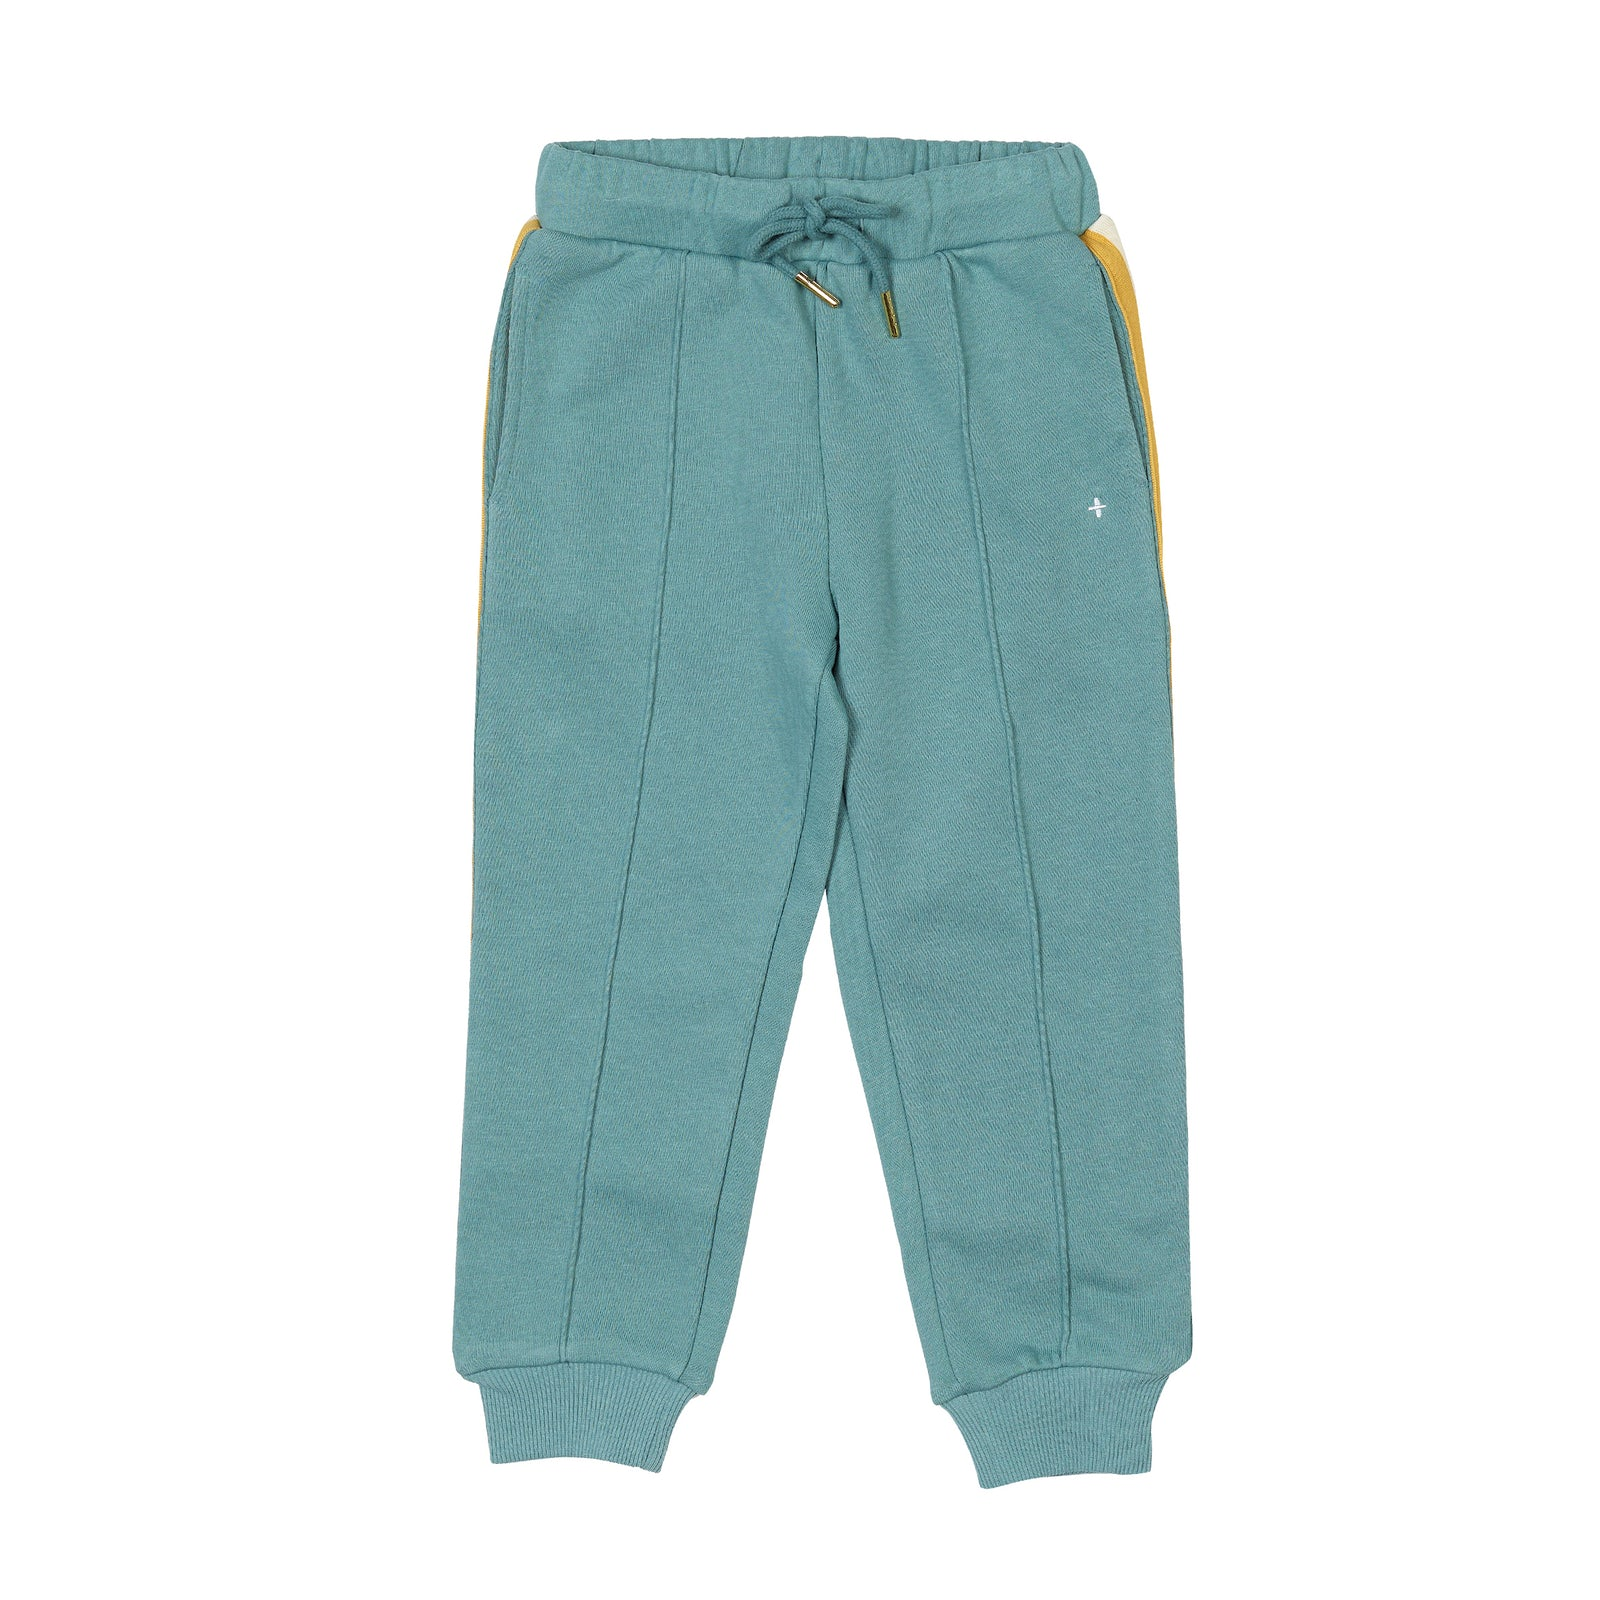 Track Team Jogger Pants Teal